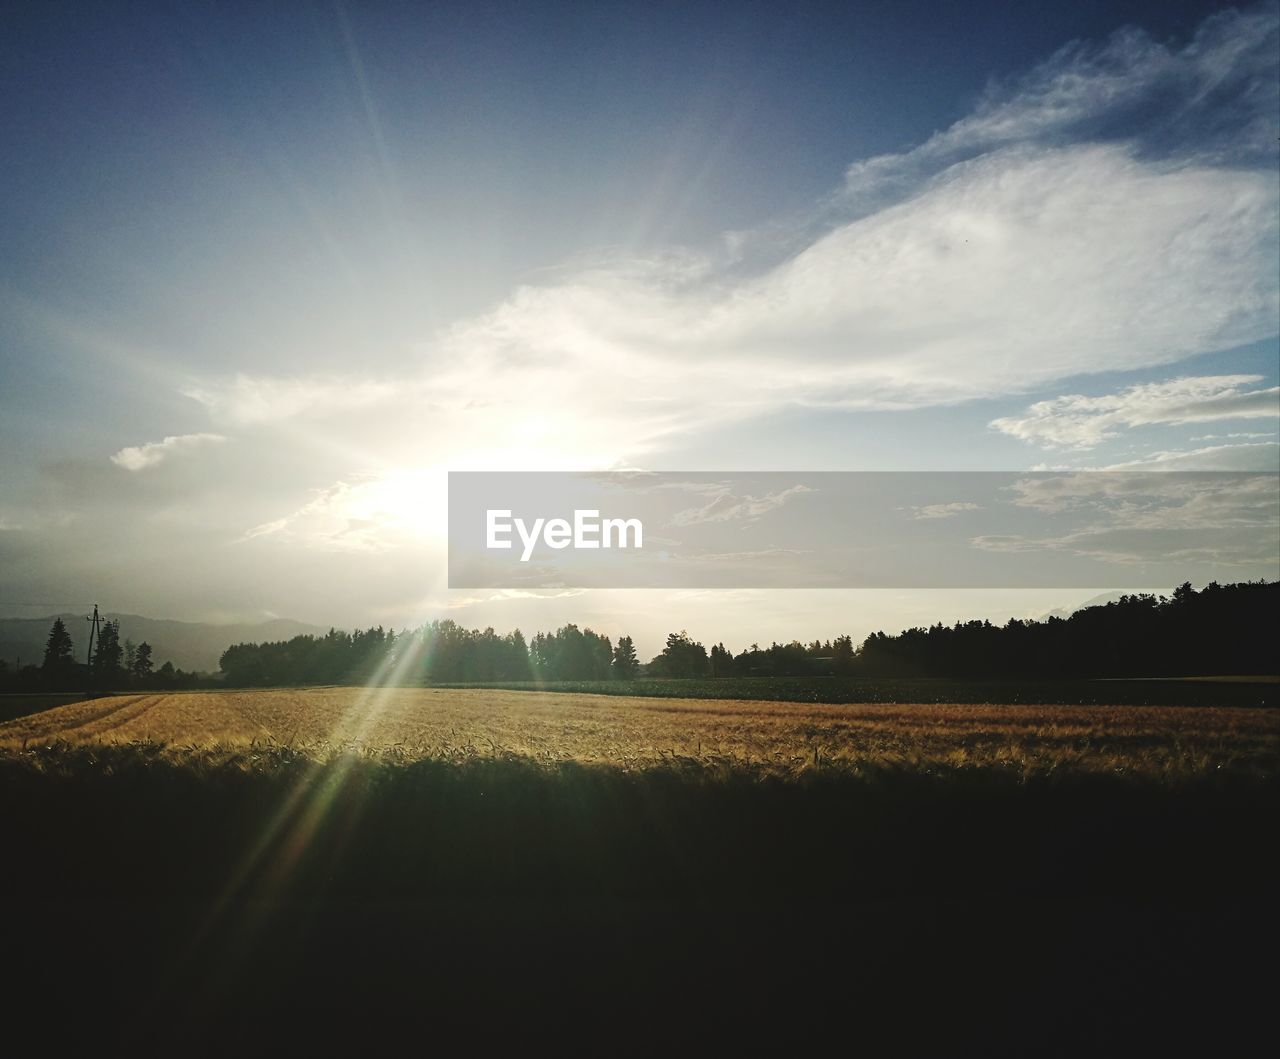 sky, landscape, tranquil scene, field, environment, tranquility, scenics - nature, beauty in nature, land, cloud - sky, sunlight, nature, plant, no people, rural scene, agriculture, tree, sunset, growth, sun, outdoors, lens flare, bright, brightly lit, plantation